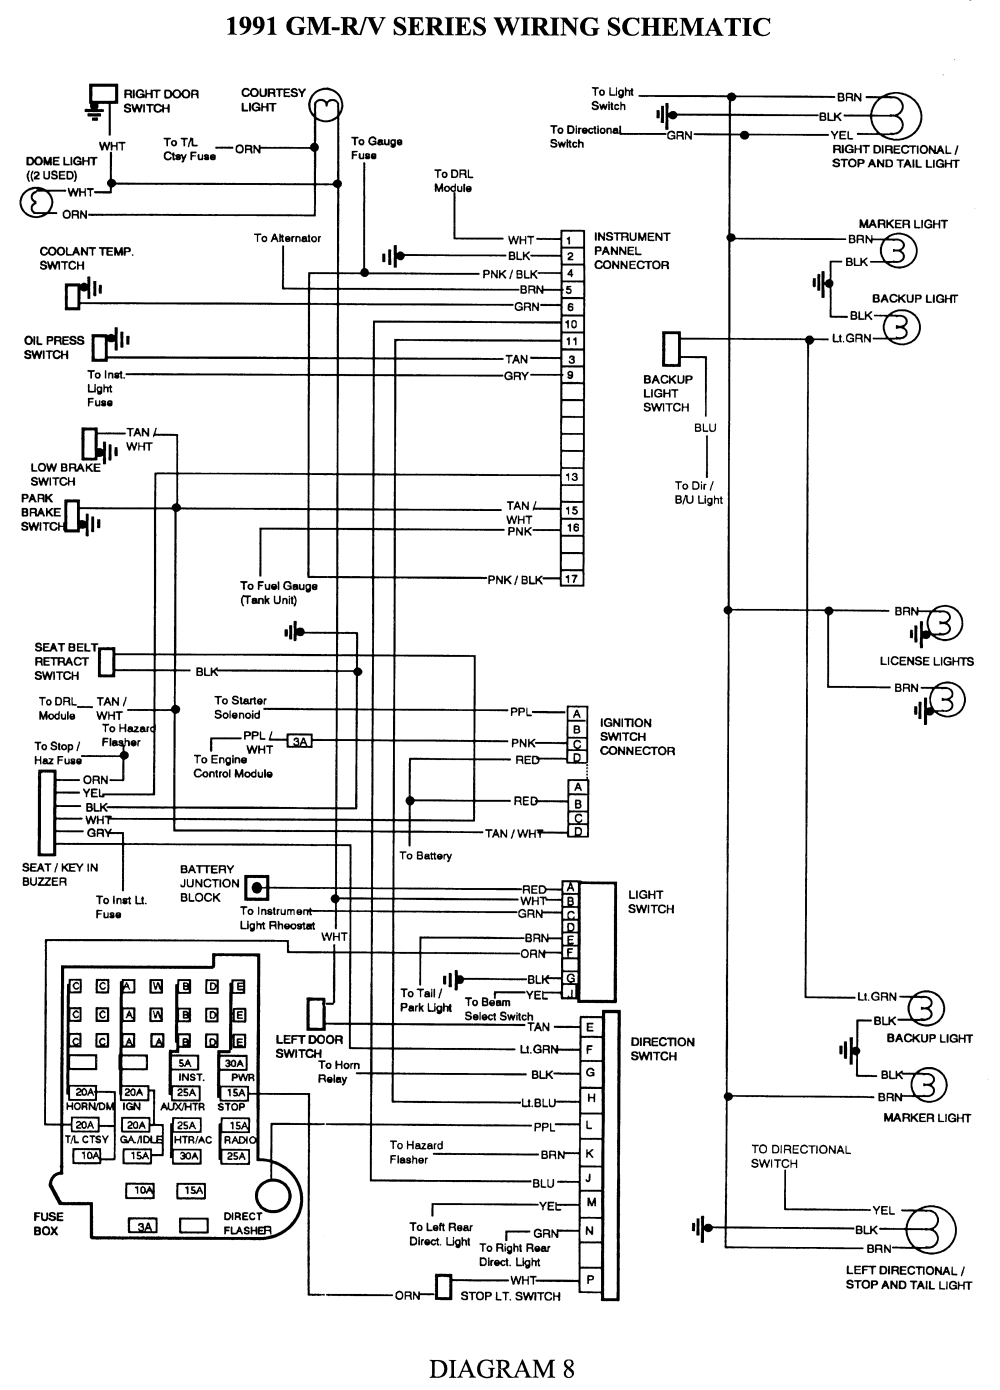 1995 Blazer Wiring Diagram FULL Version HD Quality Wiring Diagram -  TODDDIAGRAM.LESVINSDEPAULINE.FRDiagram Database